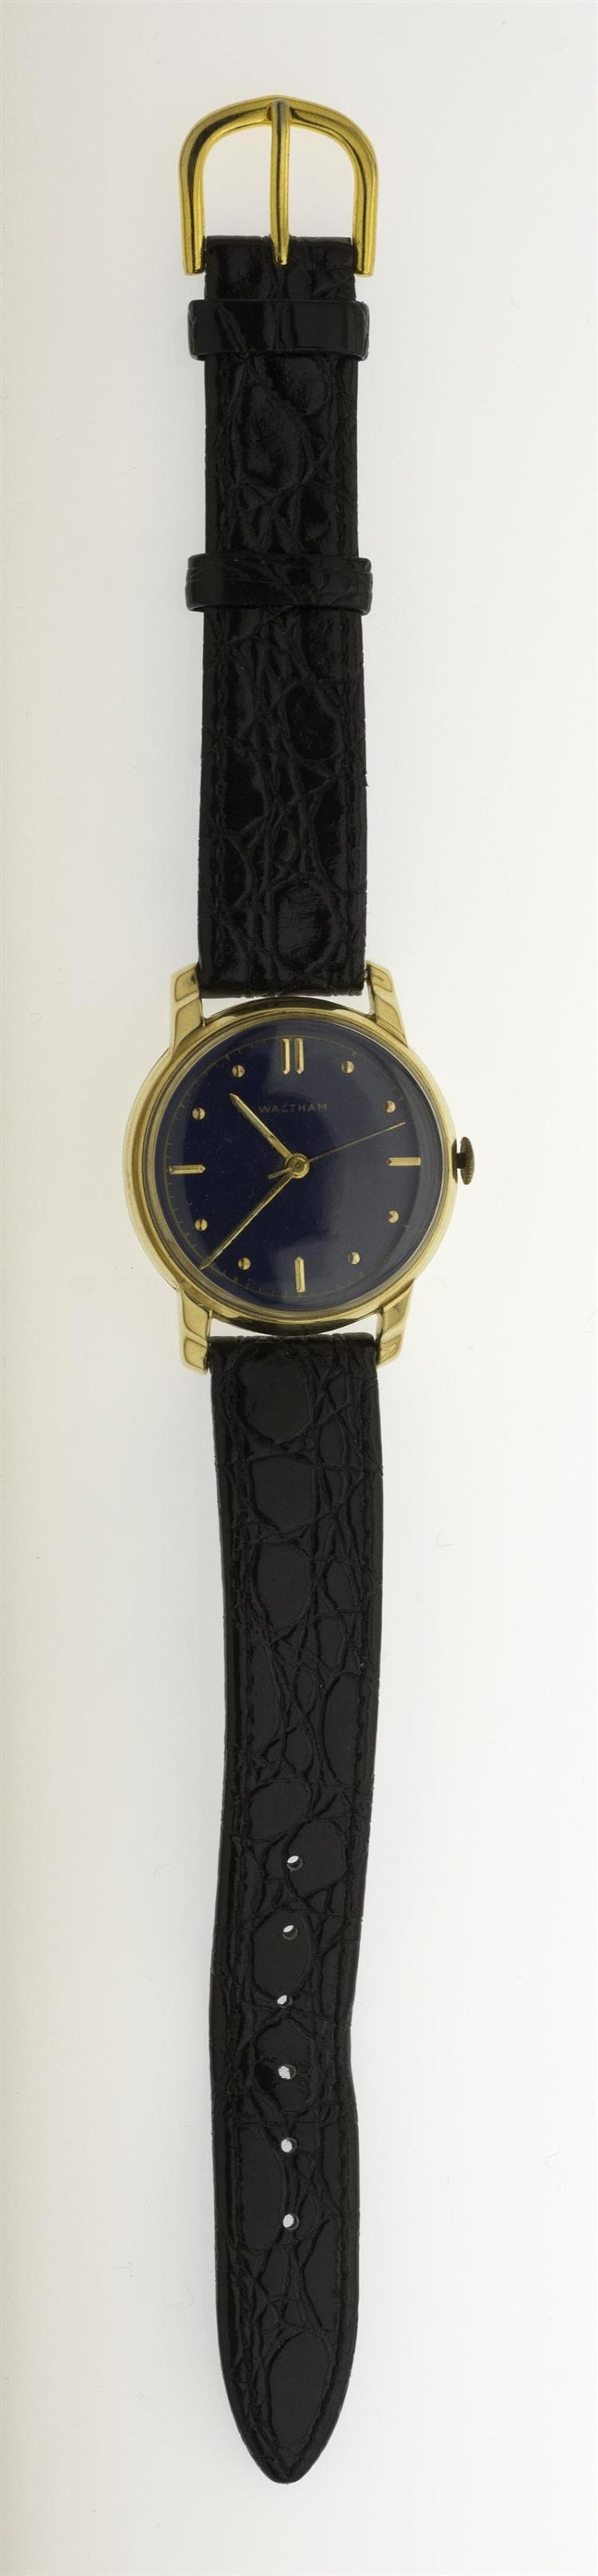 WALTHAM 14KT GOLD-FILLED MAN'S WRIST WATCH The stick dial with blue enamel. Diameter 31 mm.